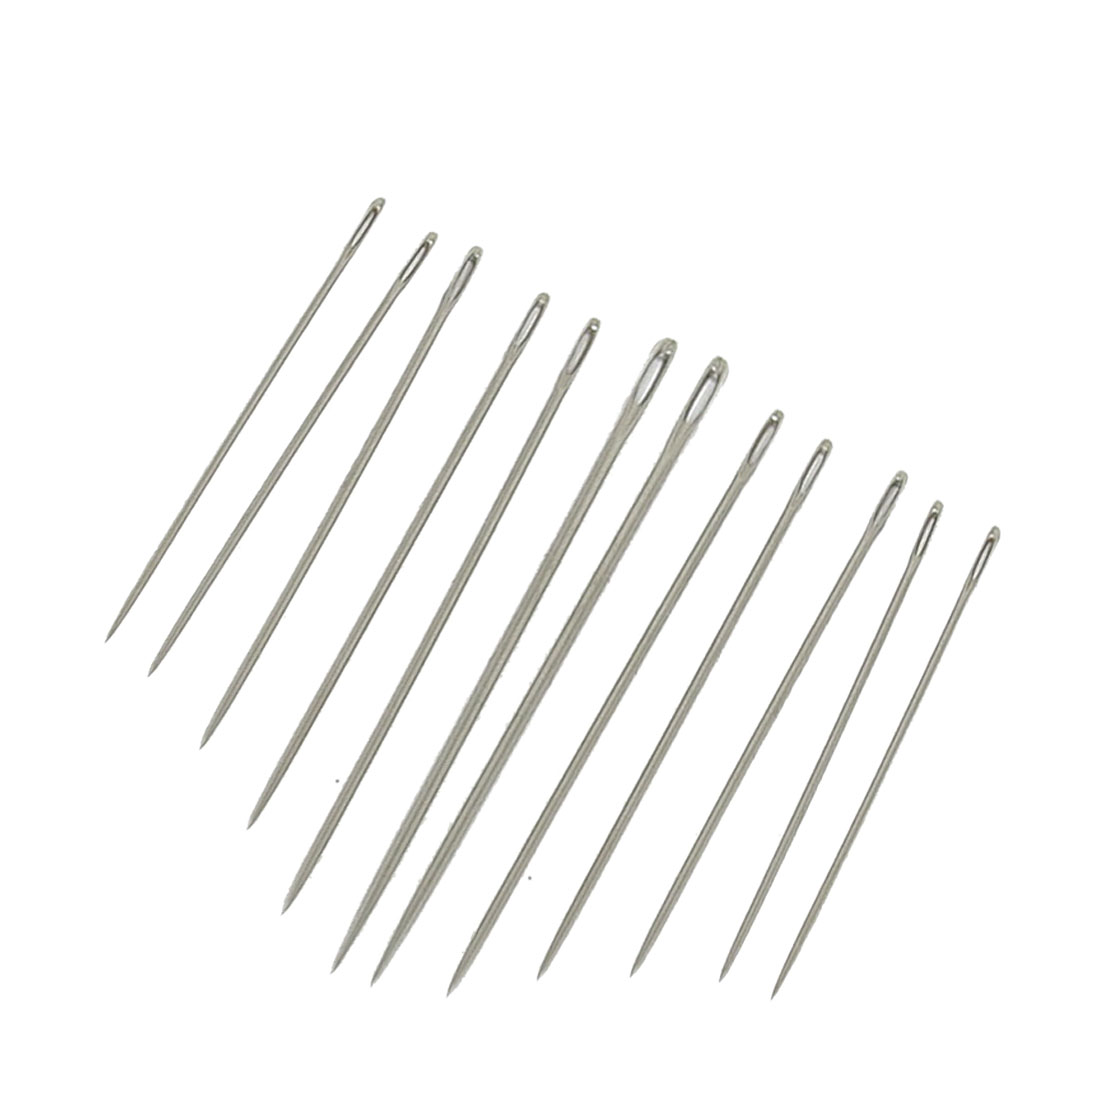 12 Pcs Silver Tone Pointed Tip Stitching Sewing Needles Set